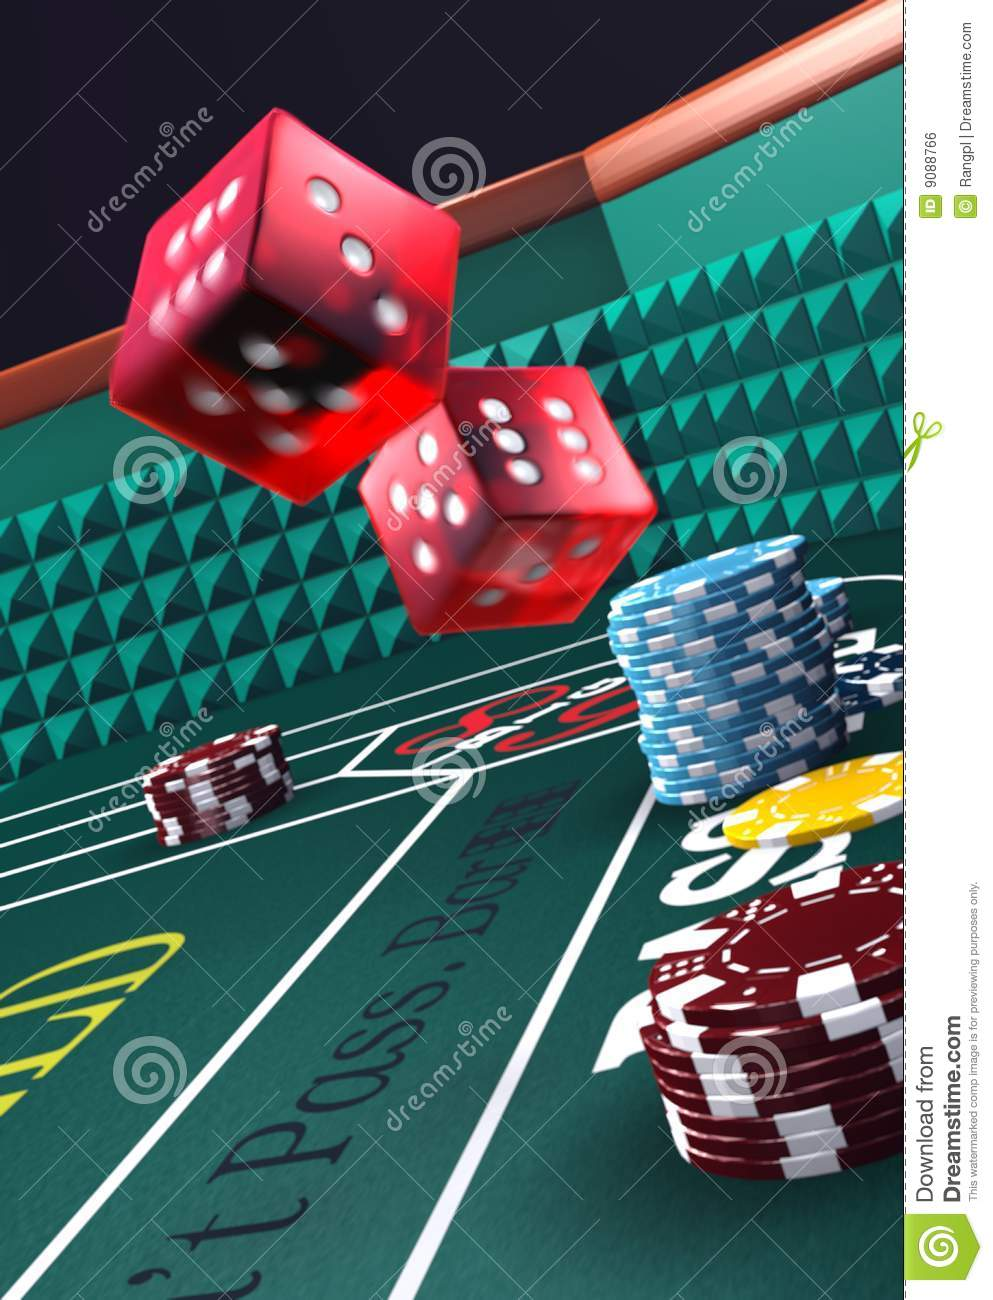 Odds of hitting field in craps